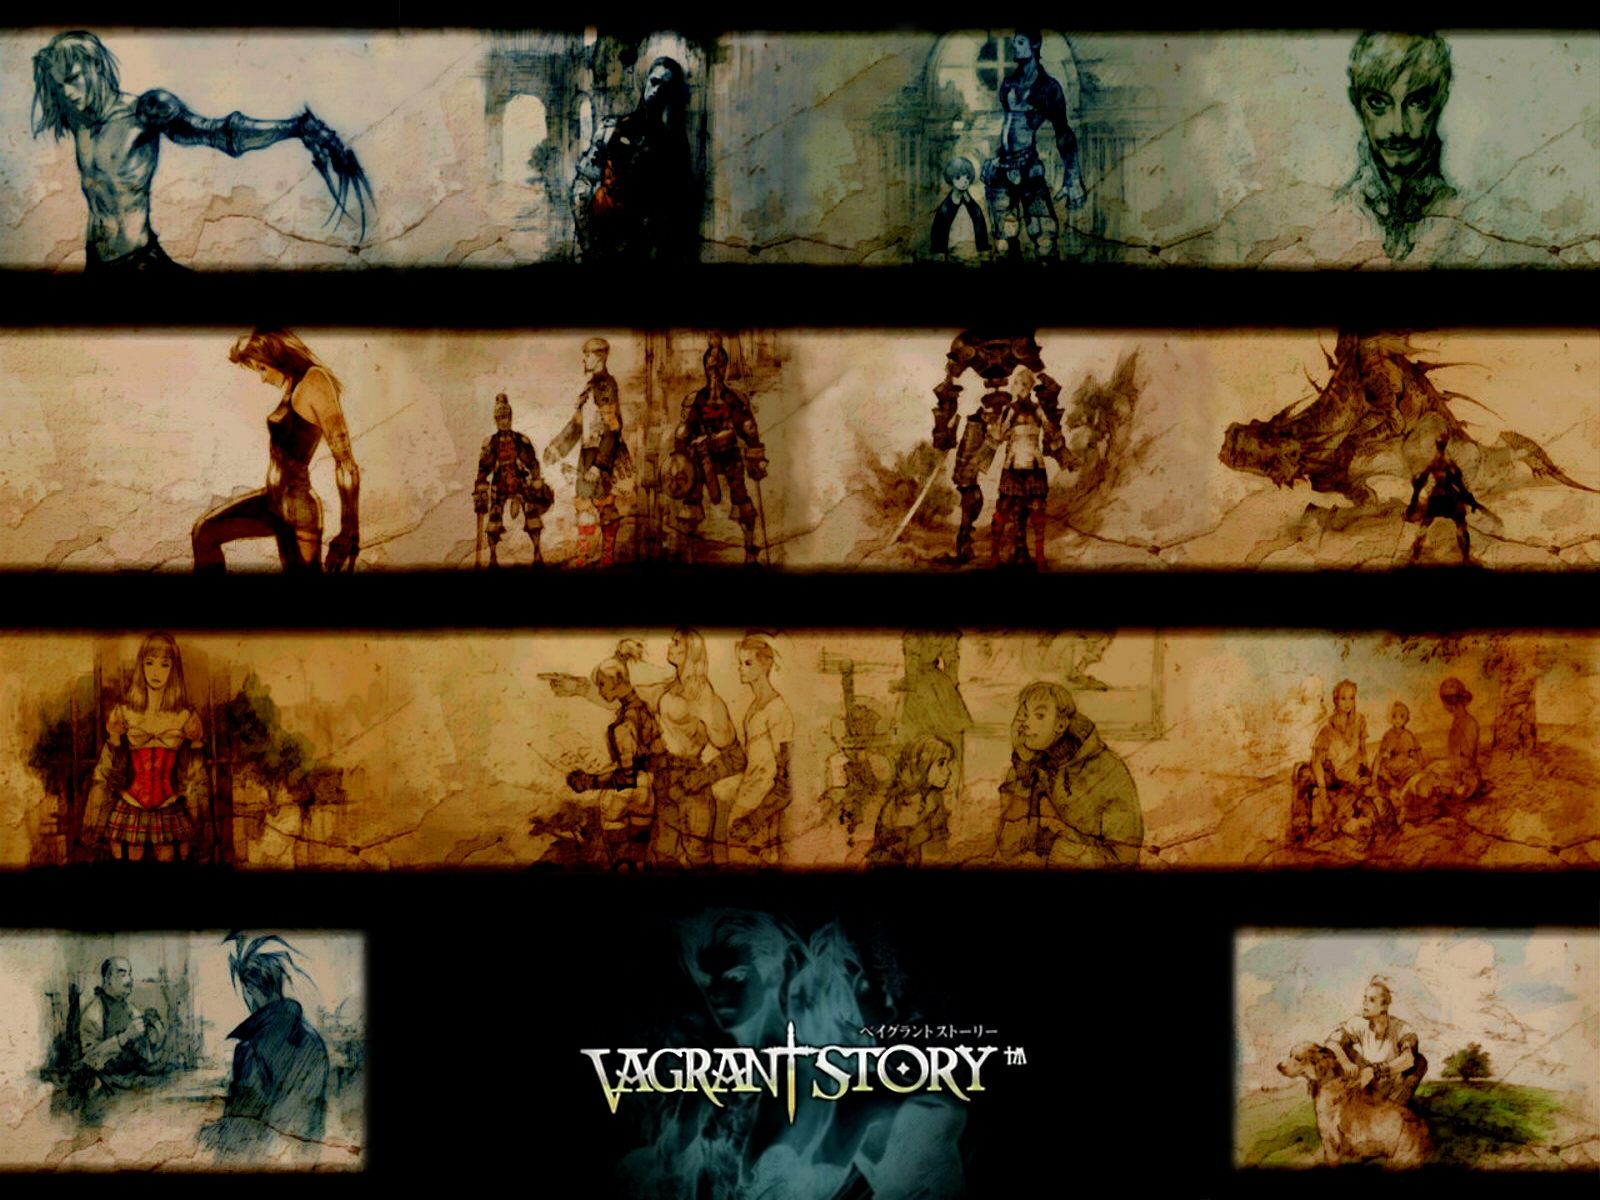 Vagrant Story HD Wallpapers Backgrounds 1600x1200